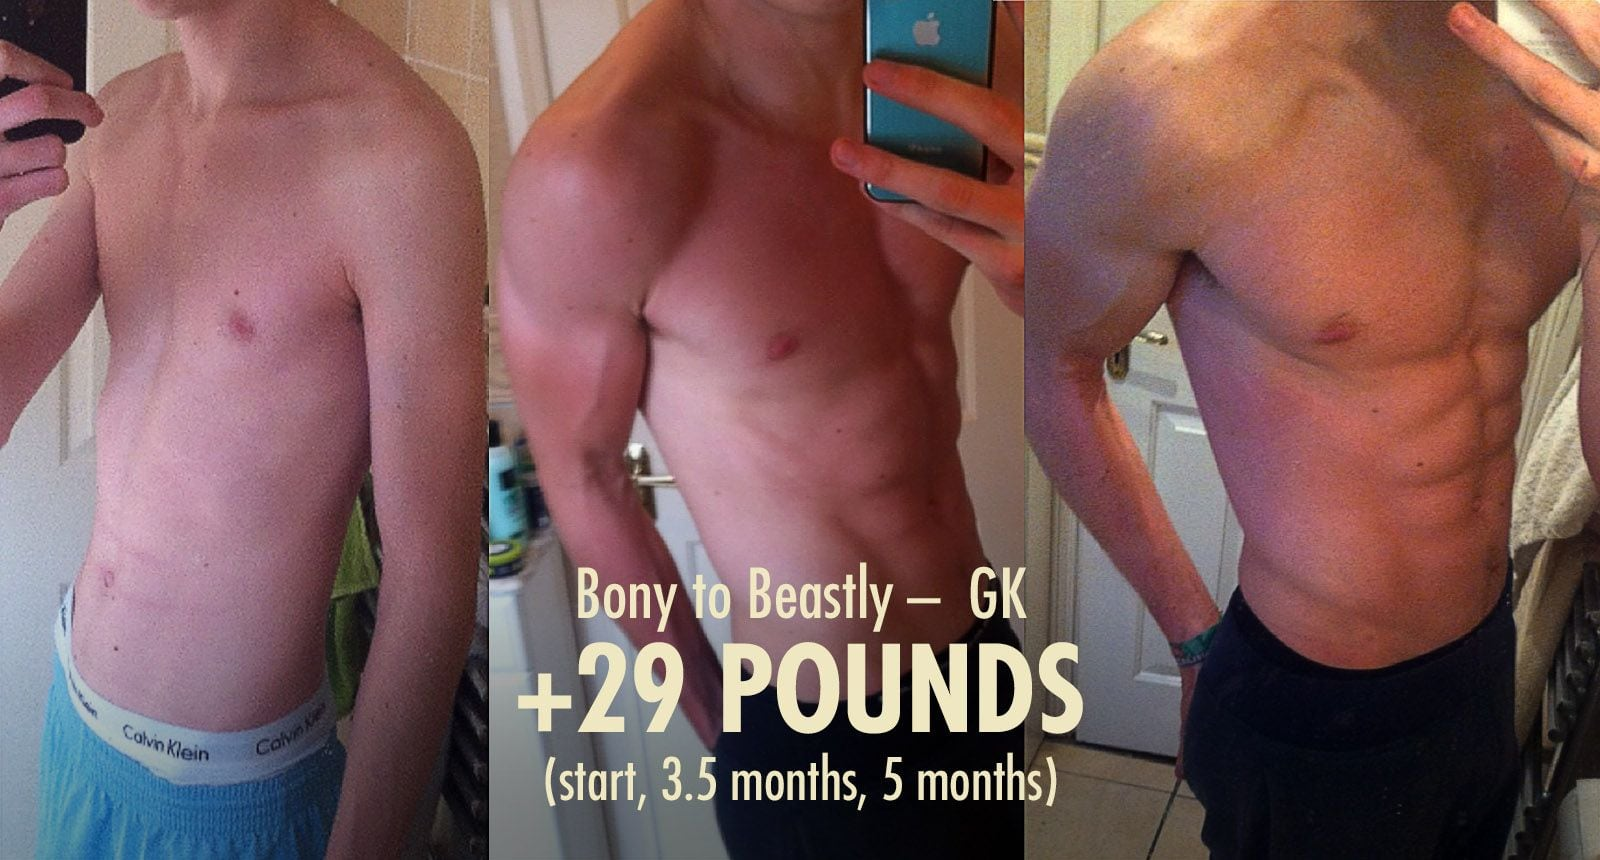 Before and after photos showing a skinny guy doing a lean bulking transformation.